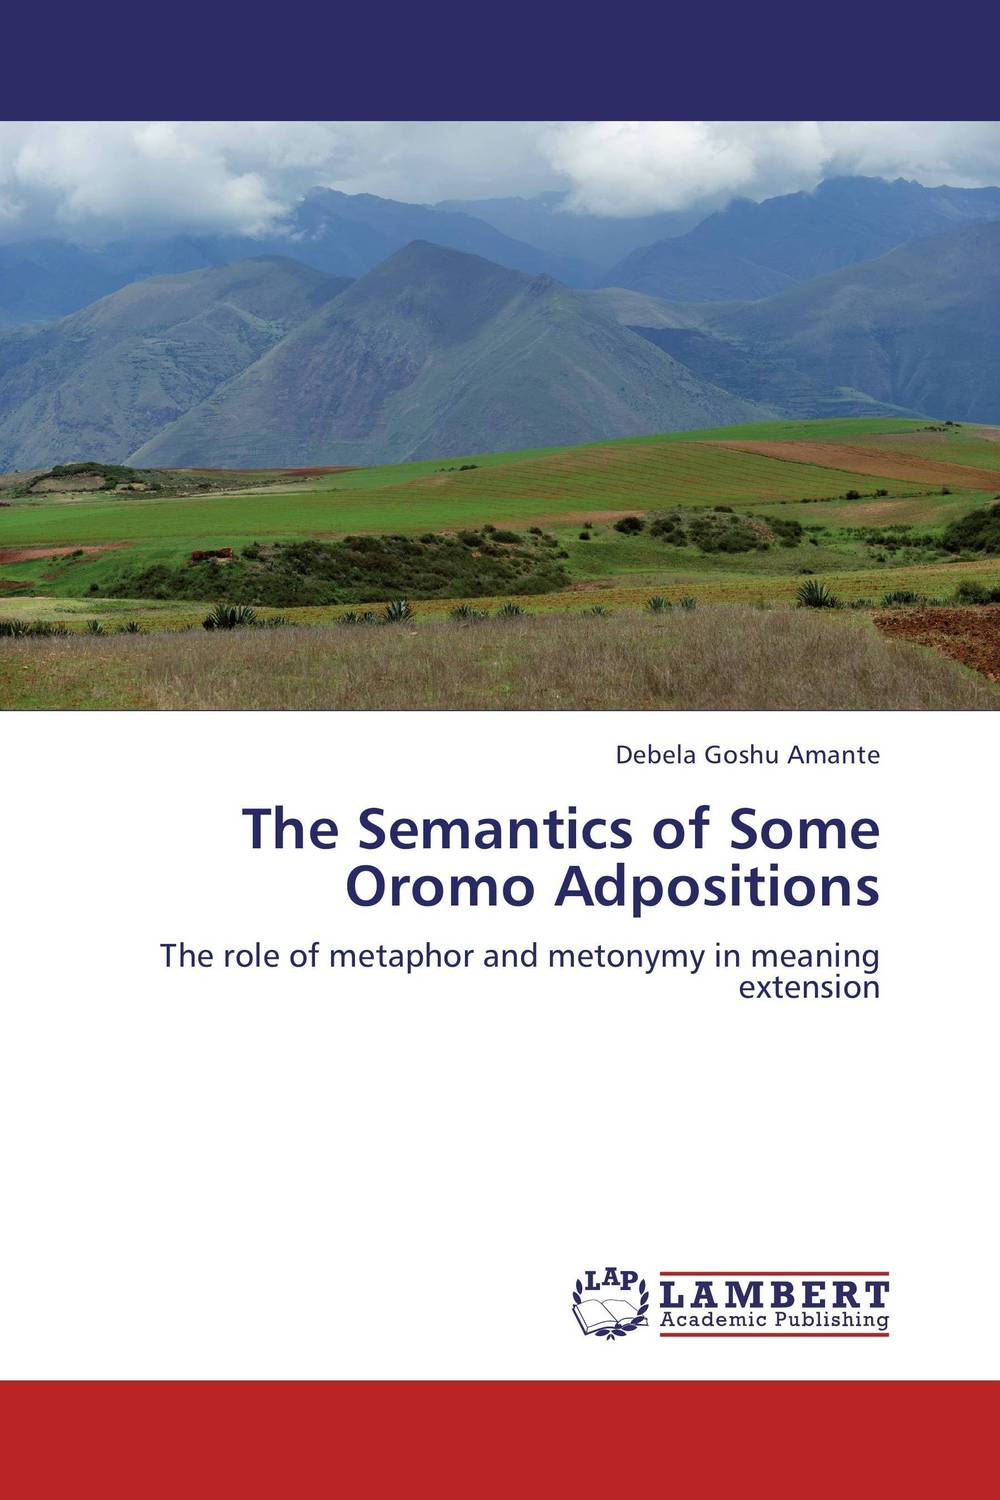 The Semantics of Some Oromo Adpositions a cognitive semantics of translating metonyms in the glorious qur an